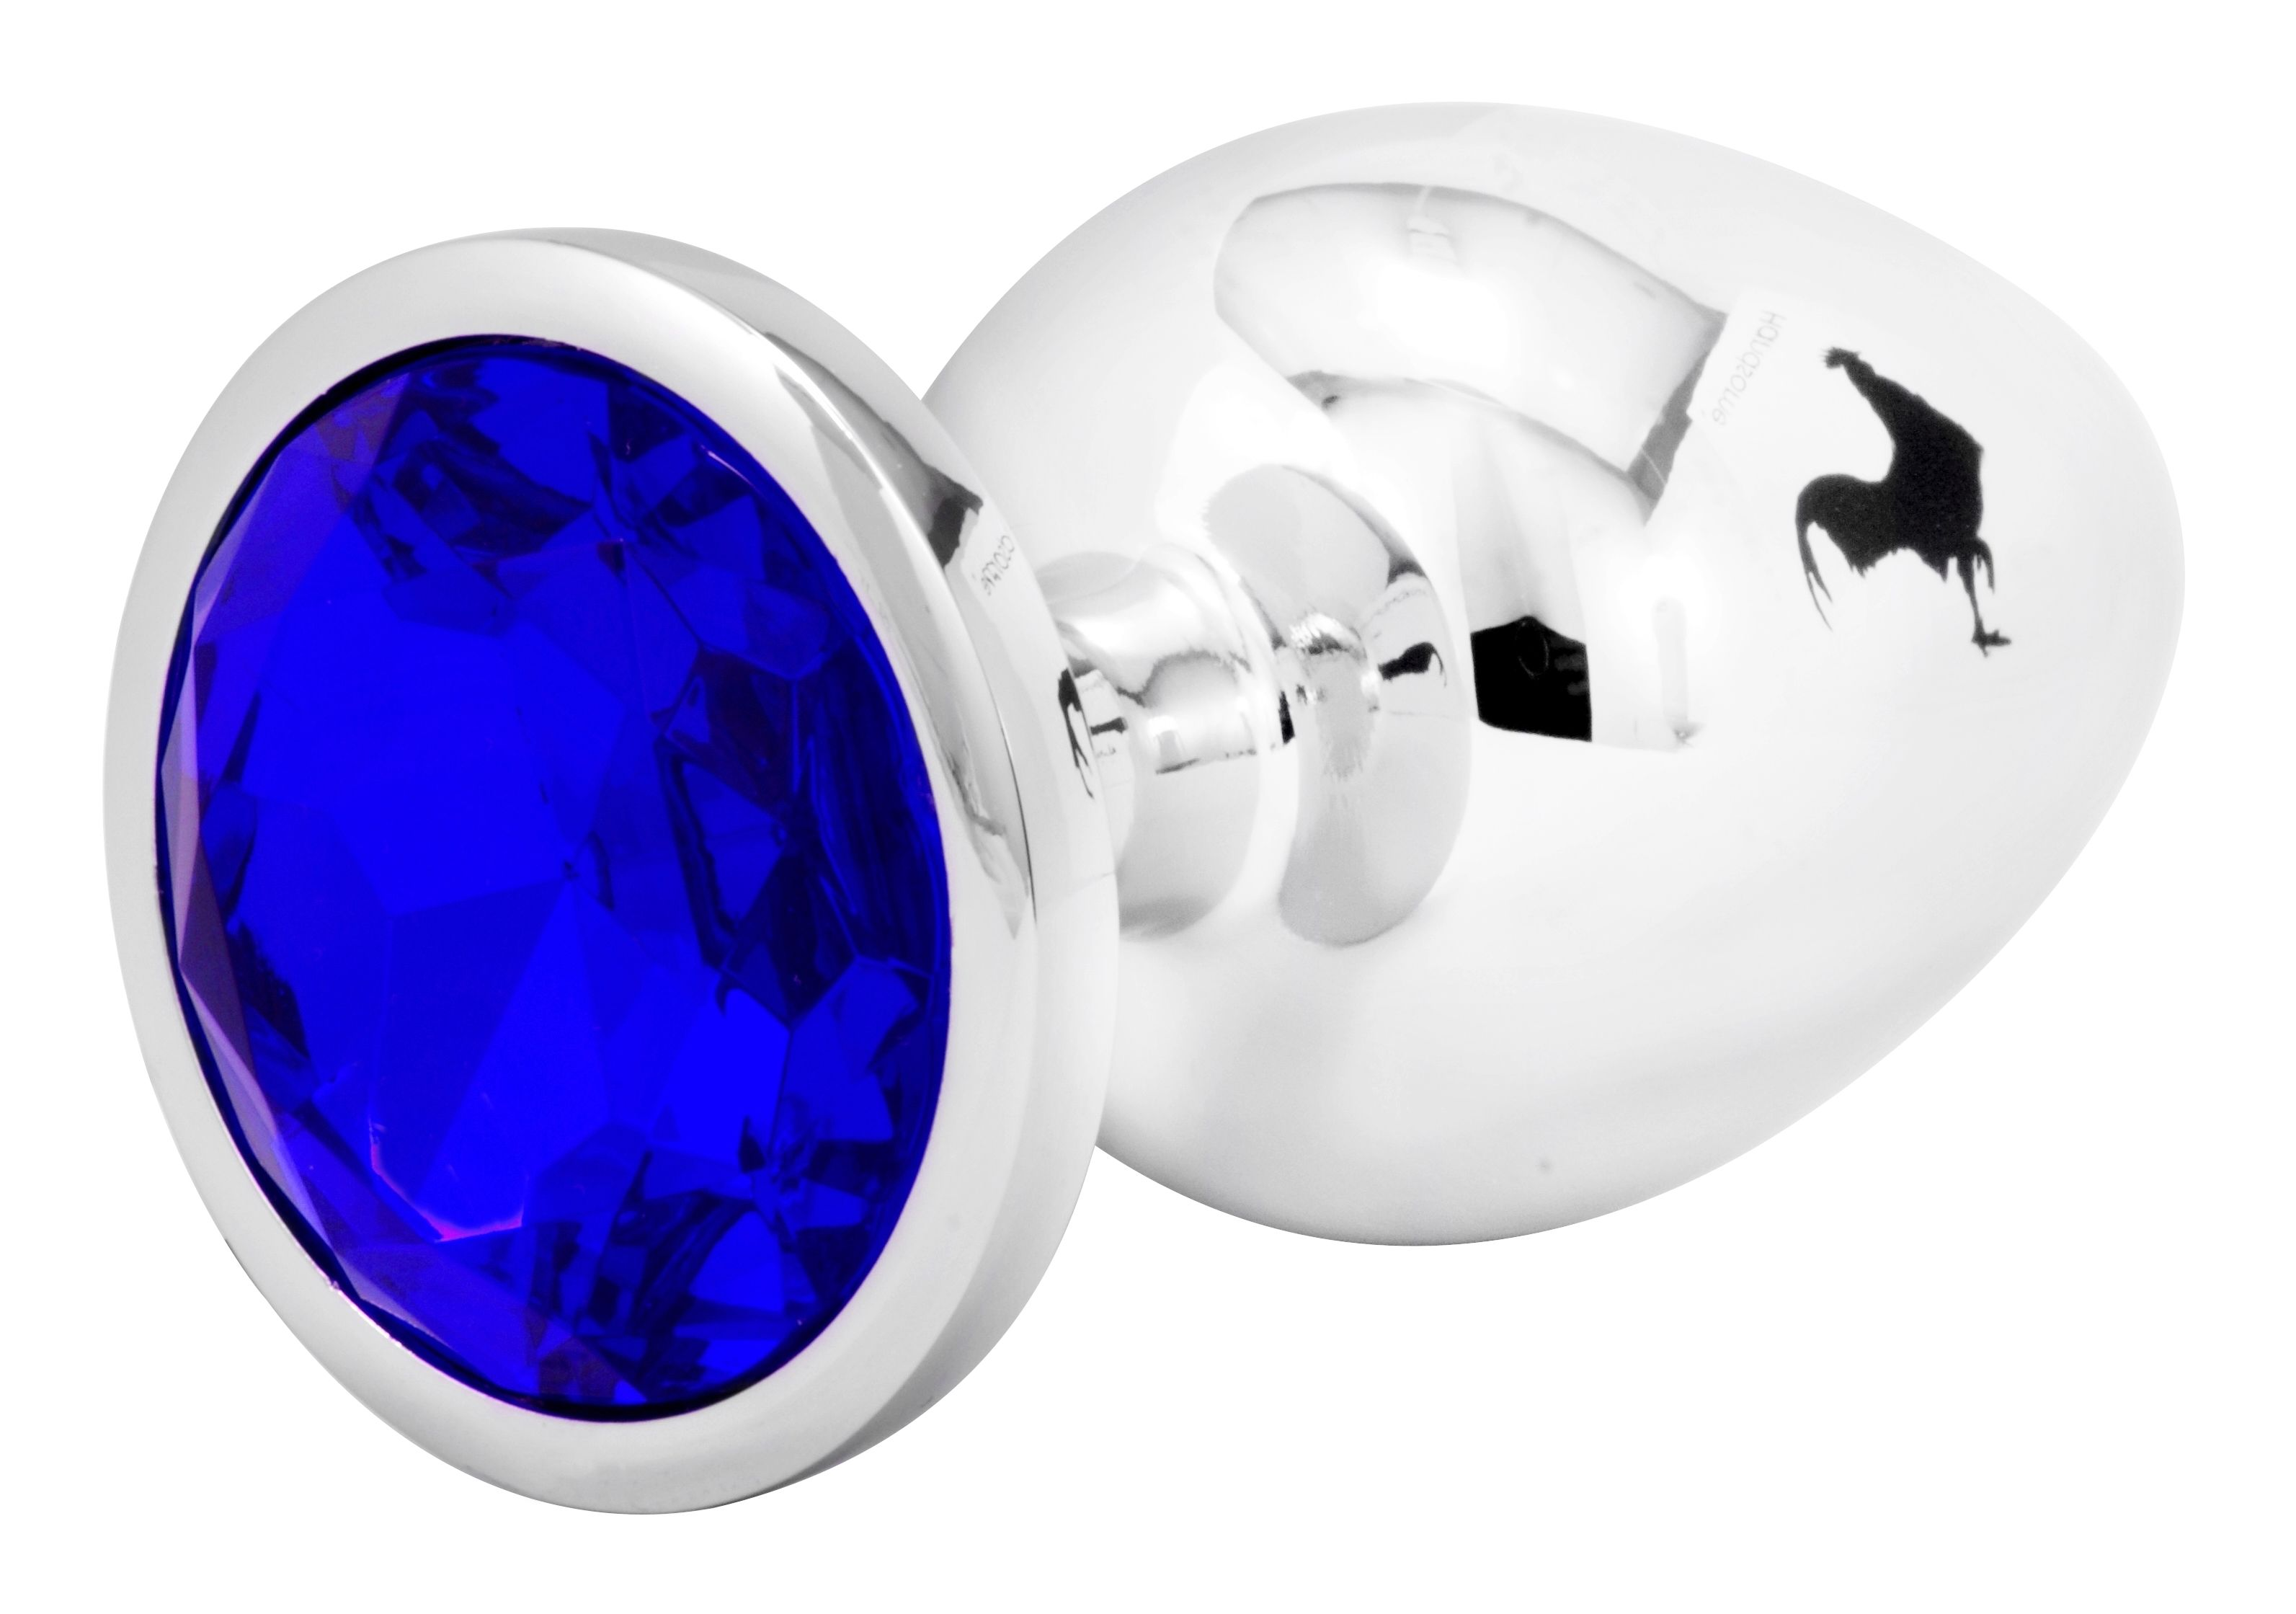 Handsome+Cock+Large+Blue+Jewelled+Butt+Plug, £14.99